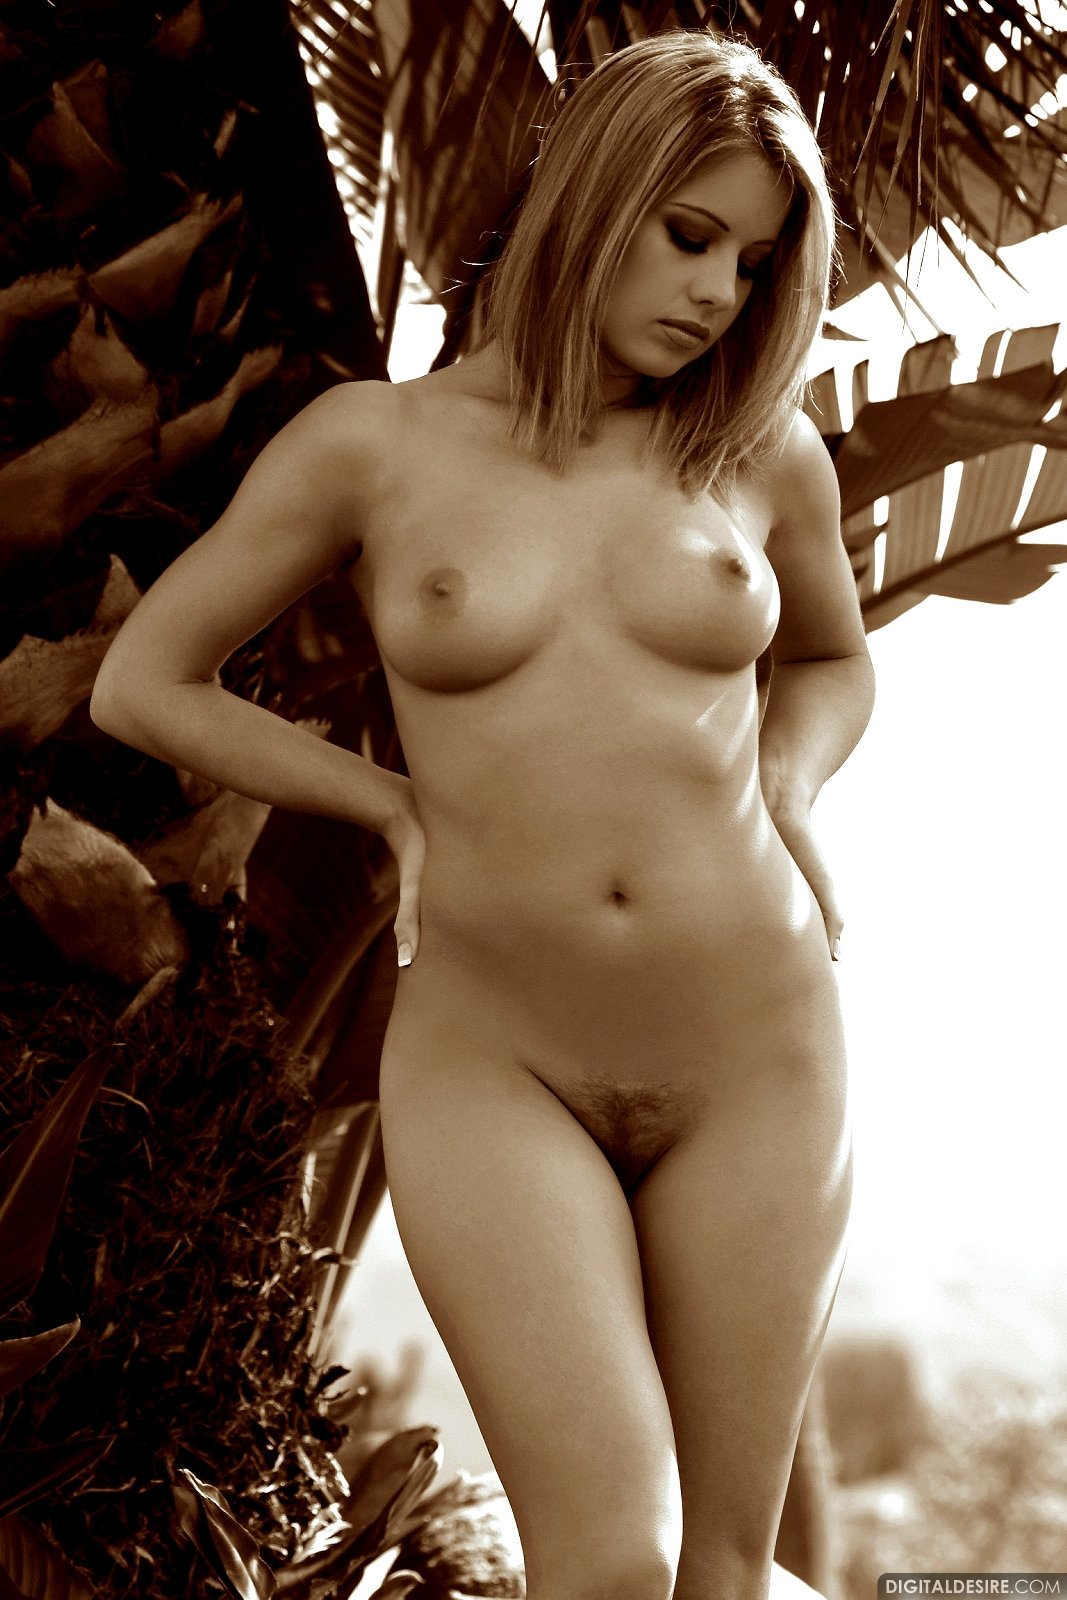 ashley brookes poses naked outdoor - my pornstar book